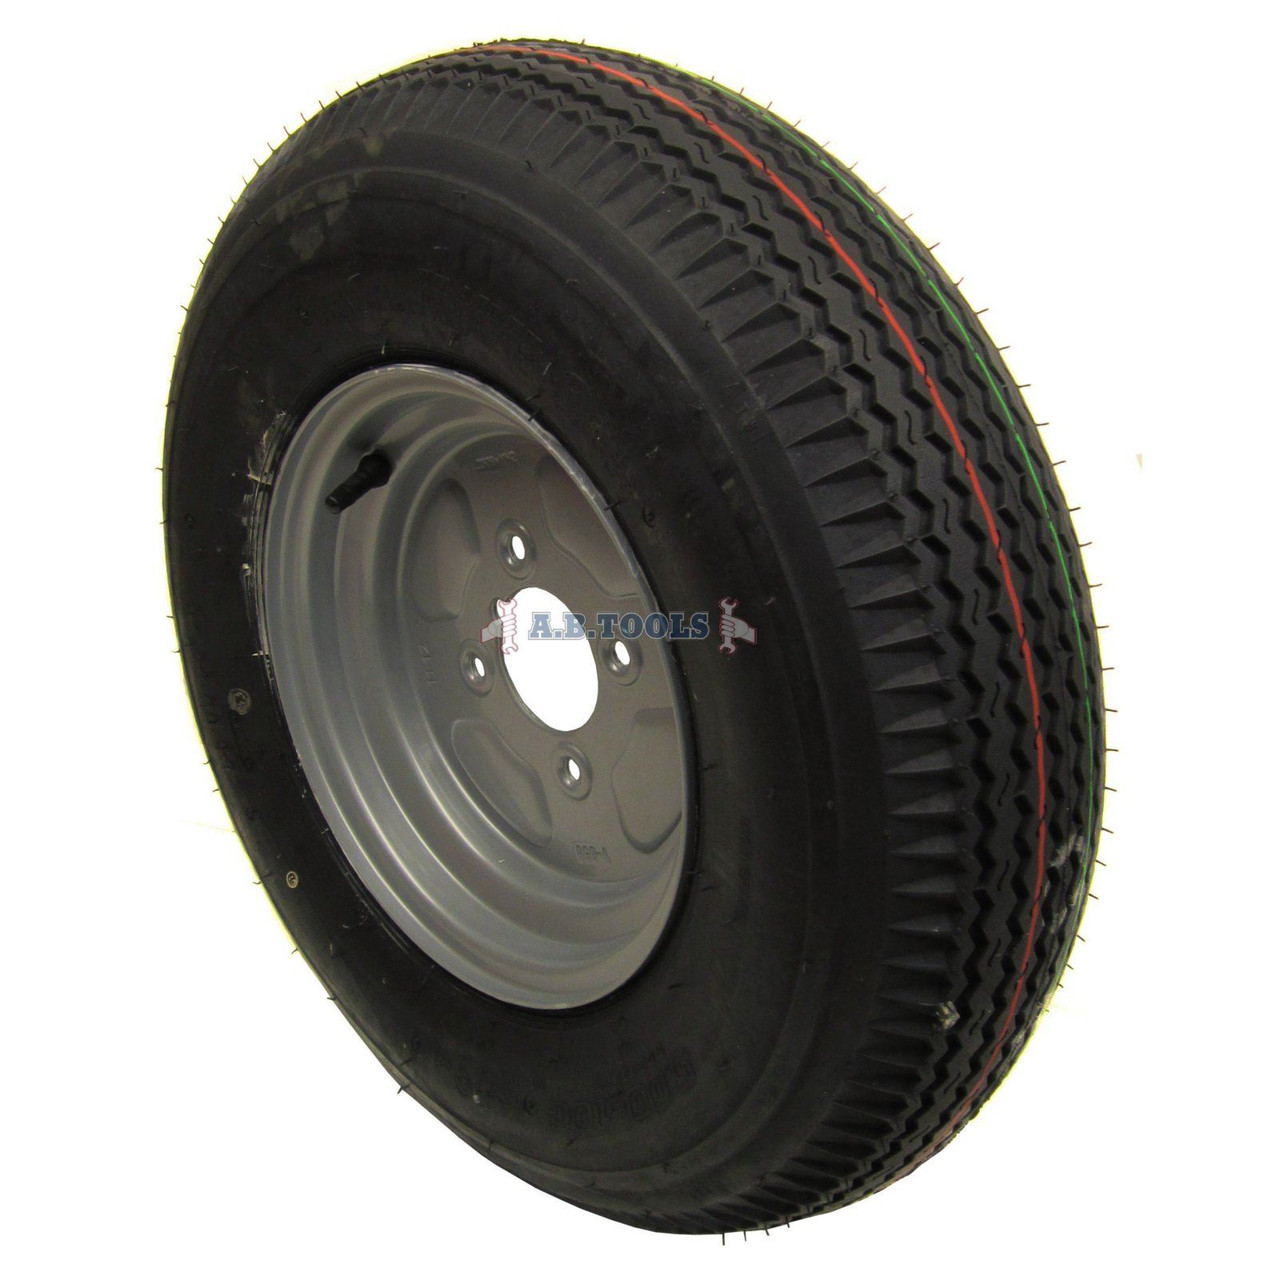 "Trailer Wheel and Tyre 5.00 x 10"" 4ply 4""pcd TRSP11"